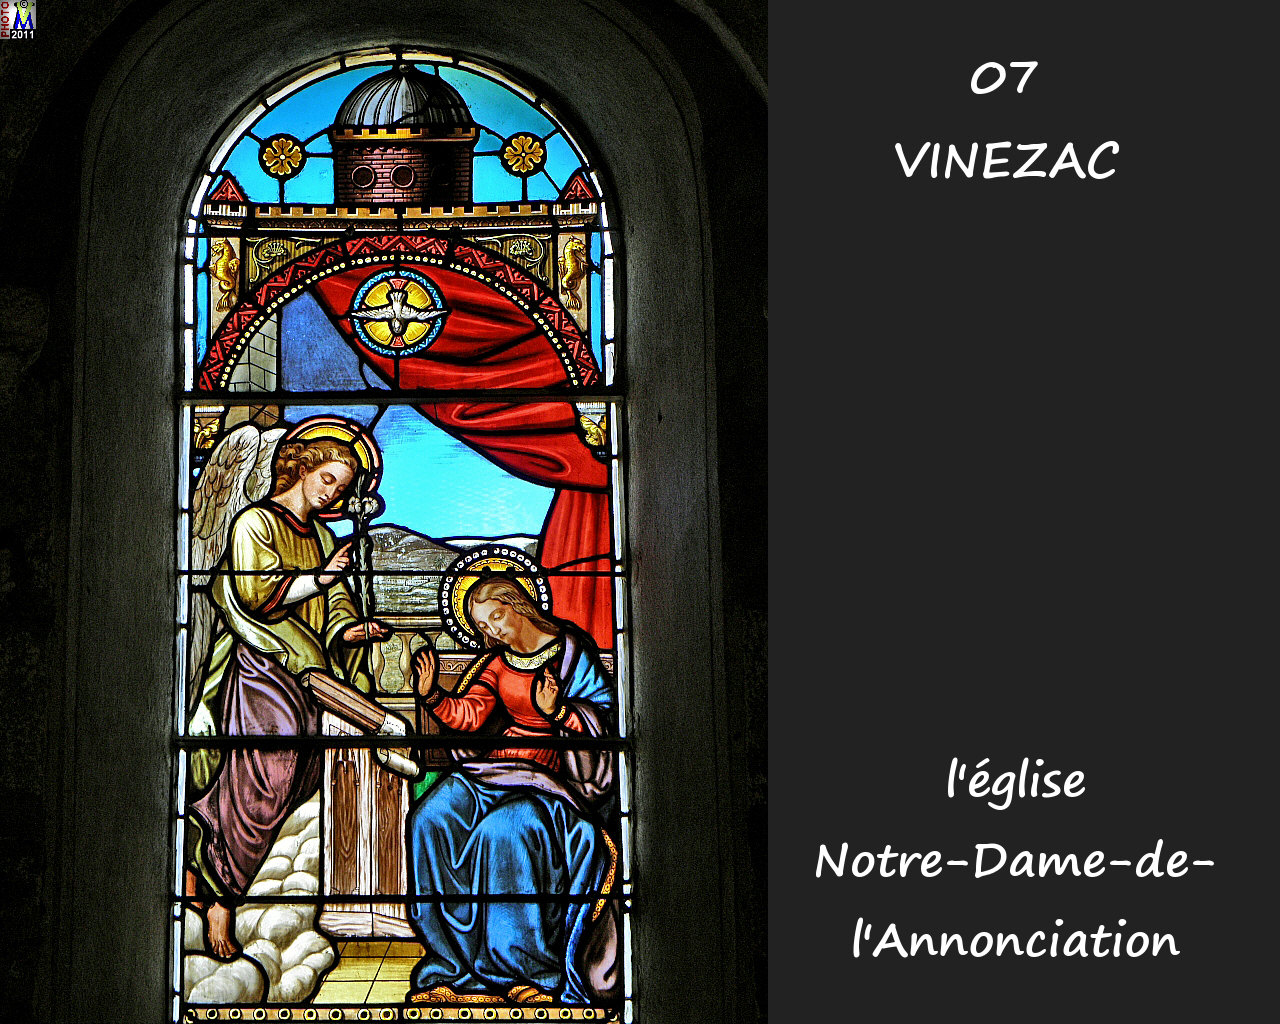 07VINEZAC_eglise_204.jpg